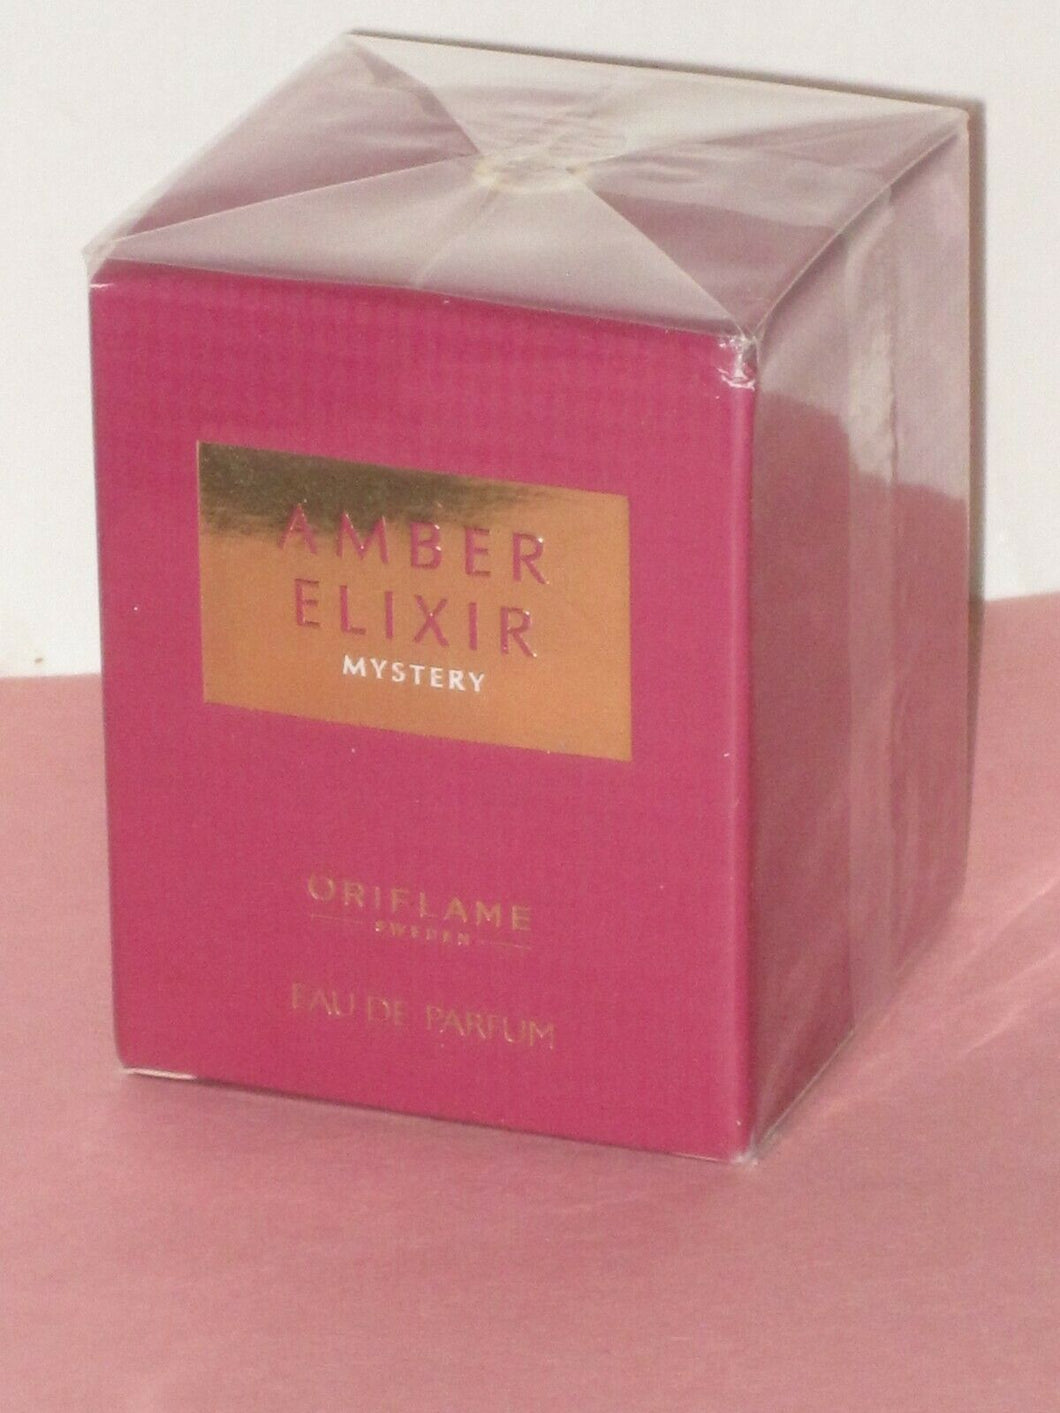 ORIFLAME SWEDEN AMBER ELIXIR MYSTERY (FLORAL/ORIENTAL/CITRUS) EDP SP. 50 ml.NEW!